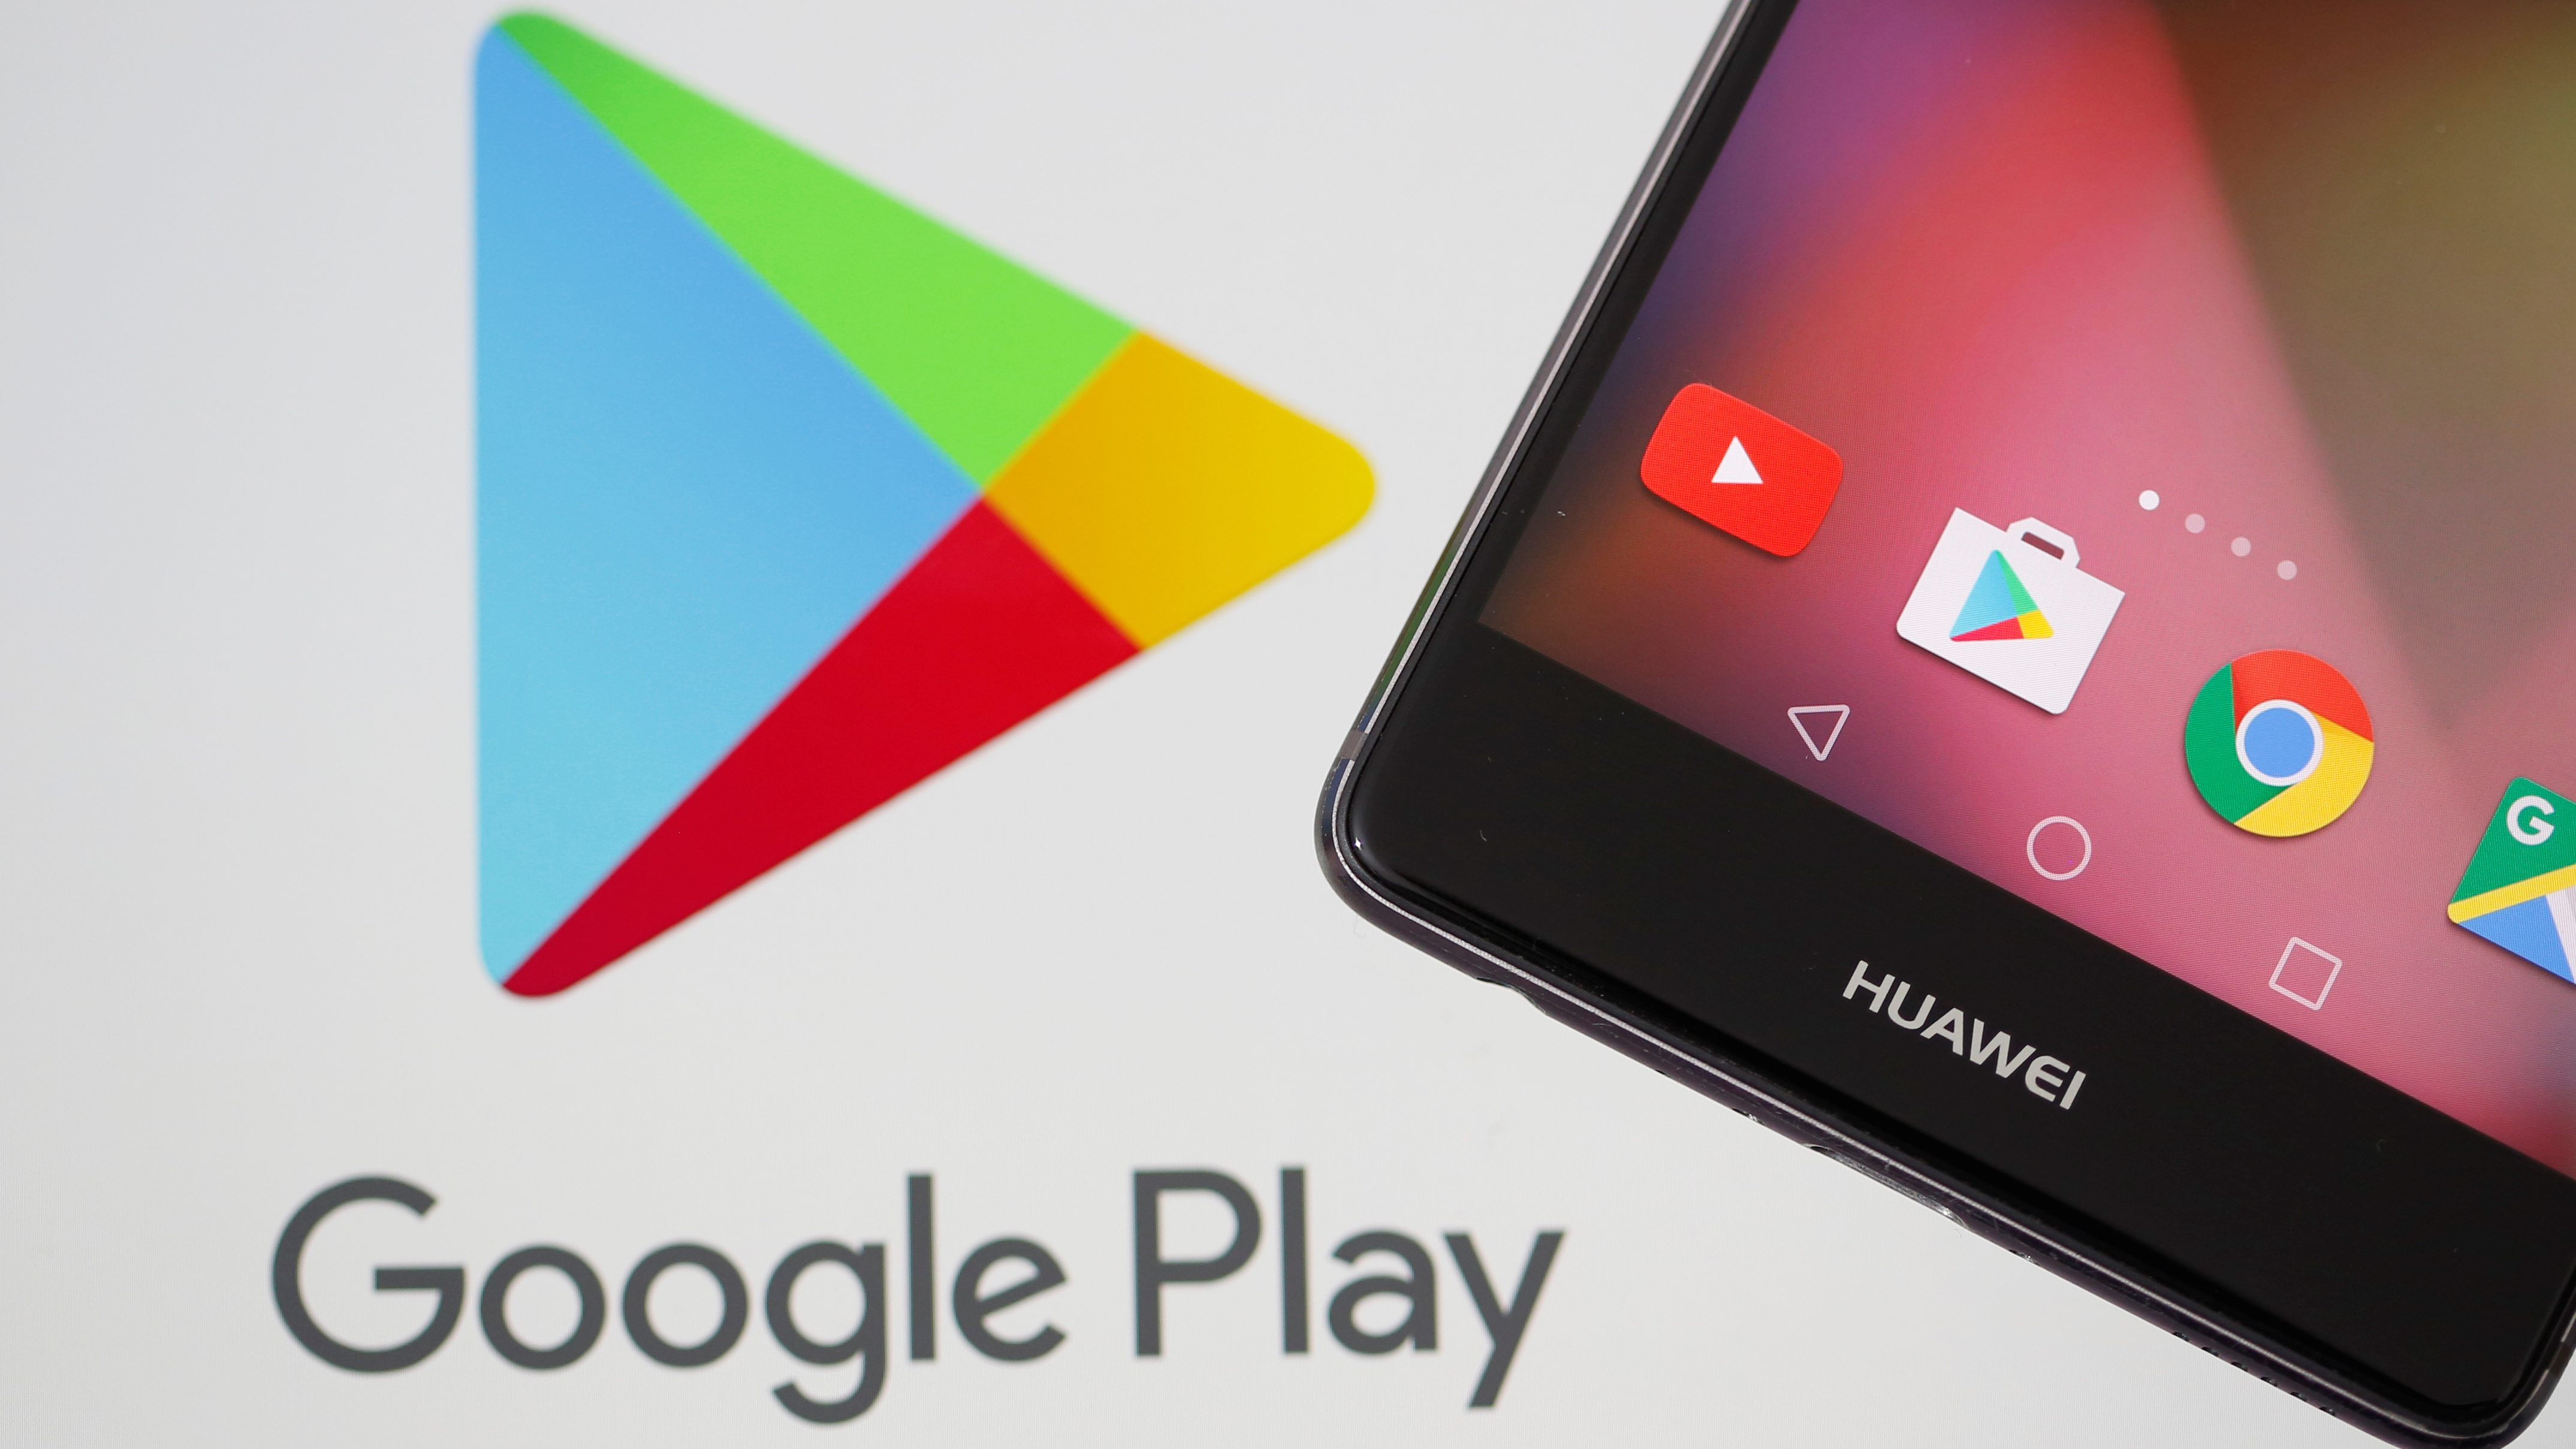 Google Play logo and Huawei smartphone